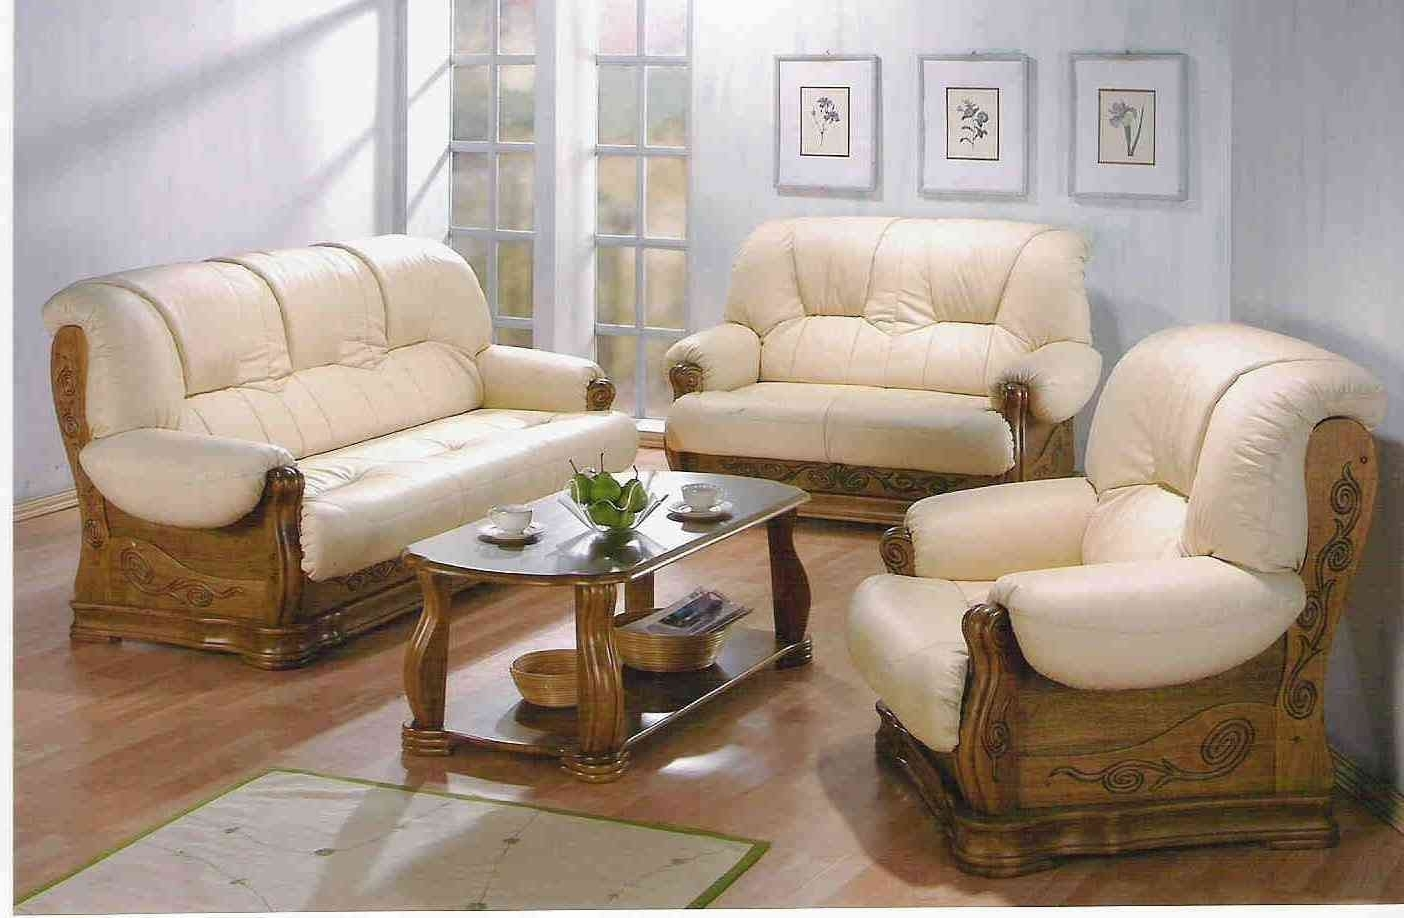 Casual Sofas And Chairs Throughout Most Current Chairs : Traditional Wooden Sofa Set Designs Couch Traditional (View 5 of 15)